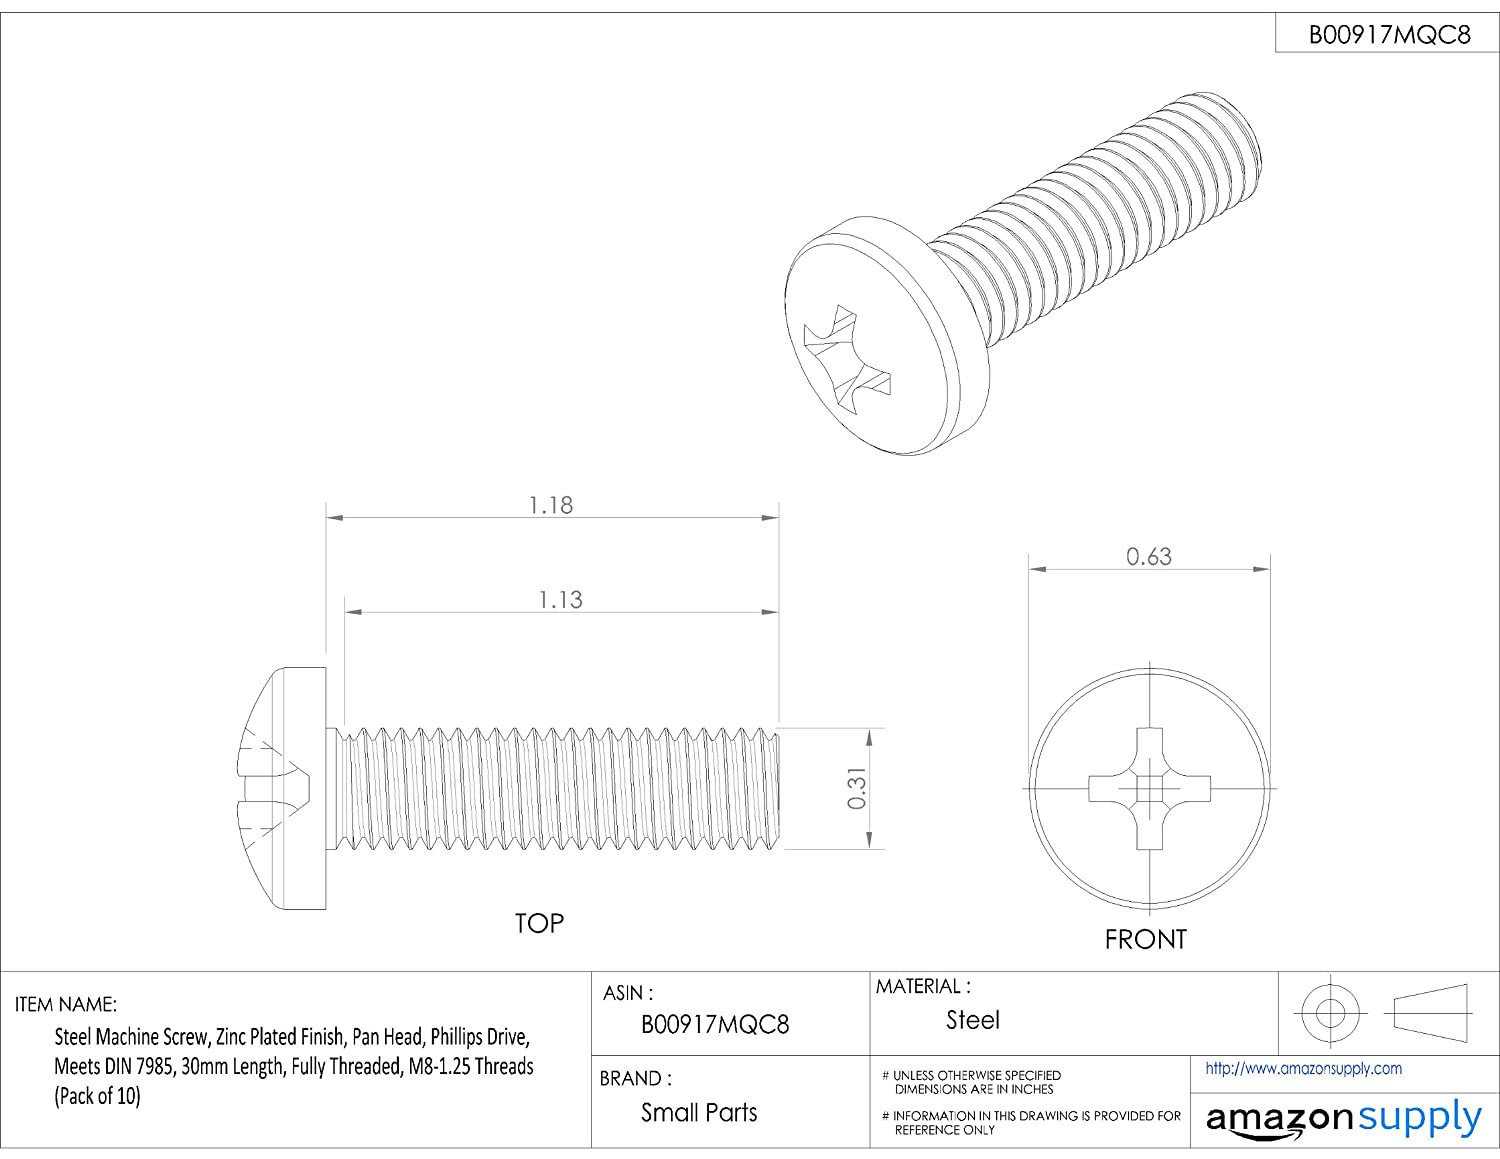 Steel Machine Screw Pan Head M8-1.25 Metric Coarse Threads Zinc Plated Finish Small Parts M830D7985A 30mm Length Meets DIN 7985 Phillips Drive Pack of 10 Fully Threaded